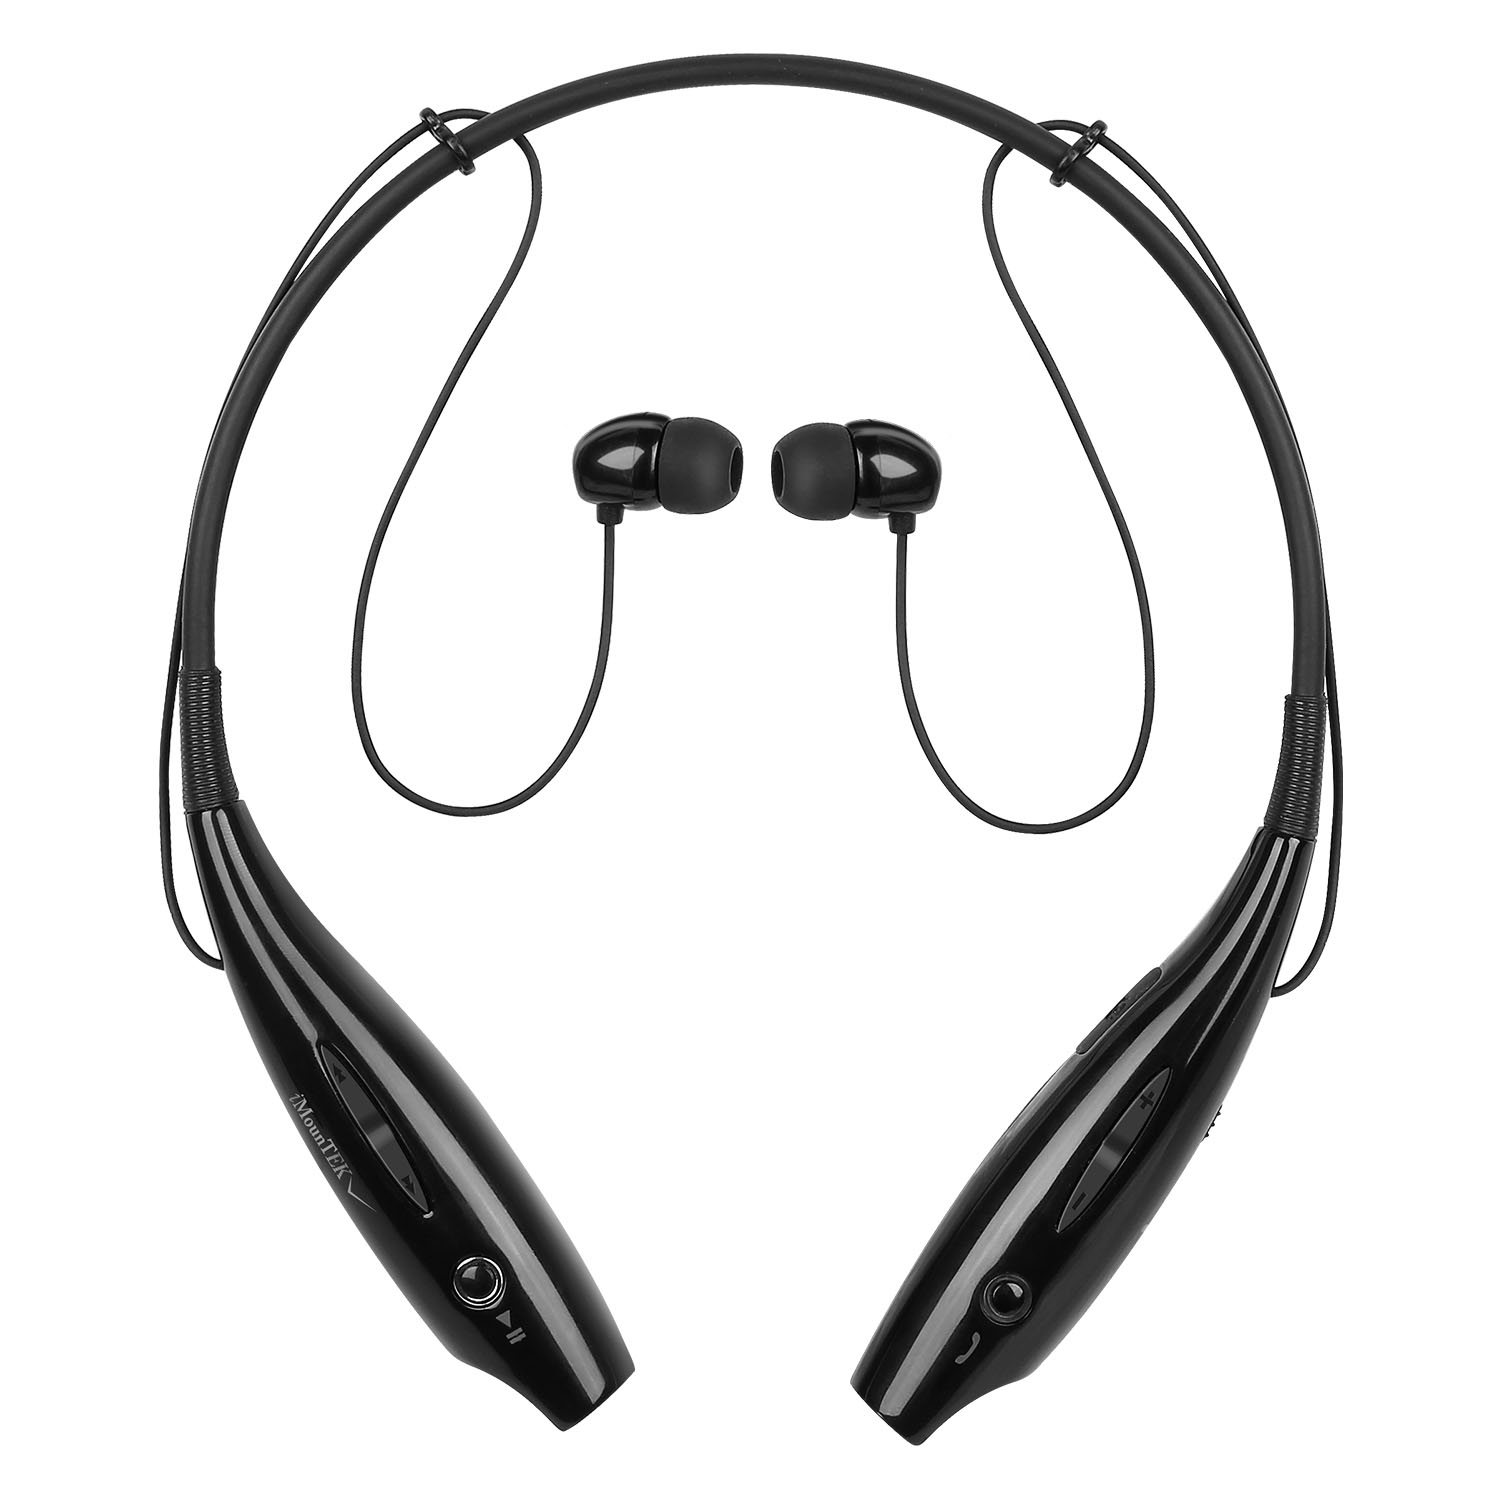 iMounTEK Bluetooth Sports Wireless Headphones With Noise Reduction - Black